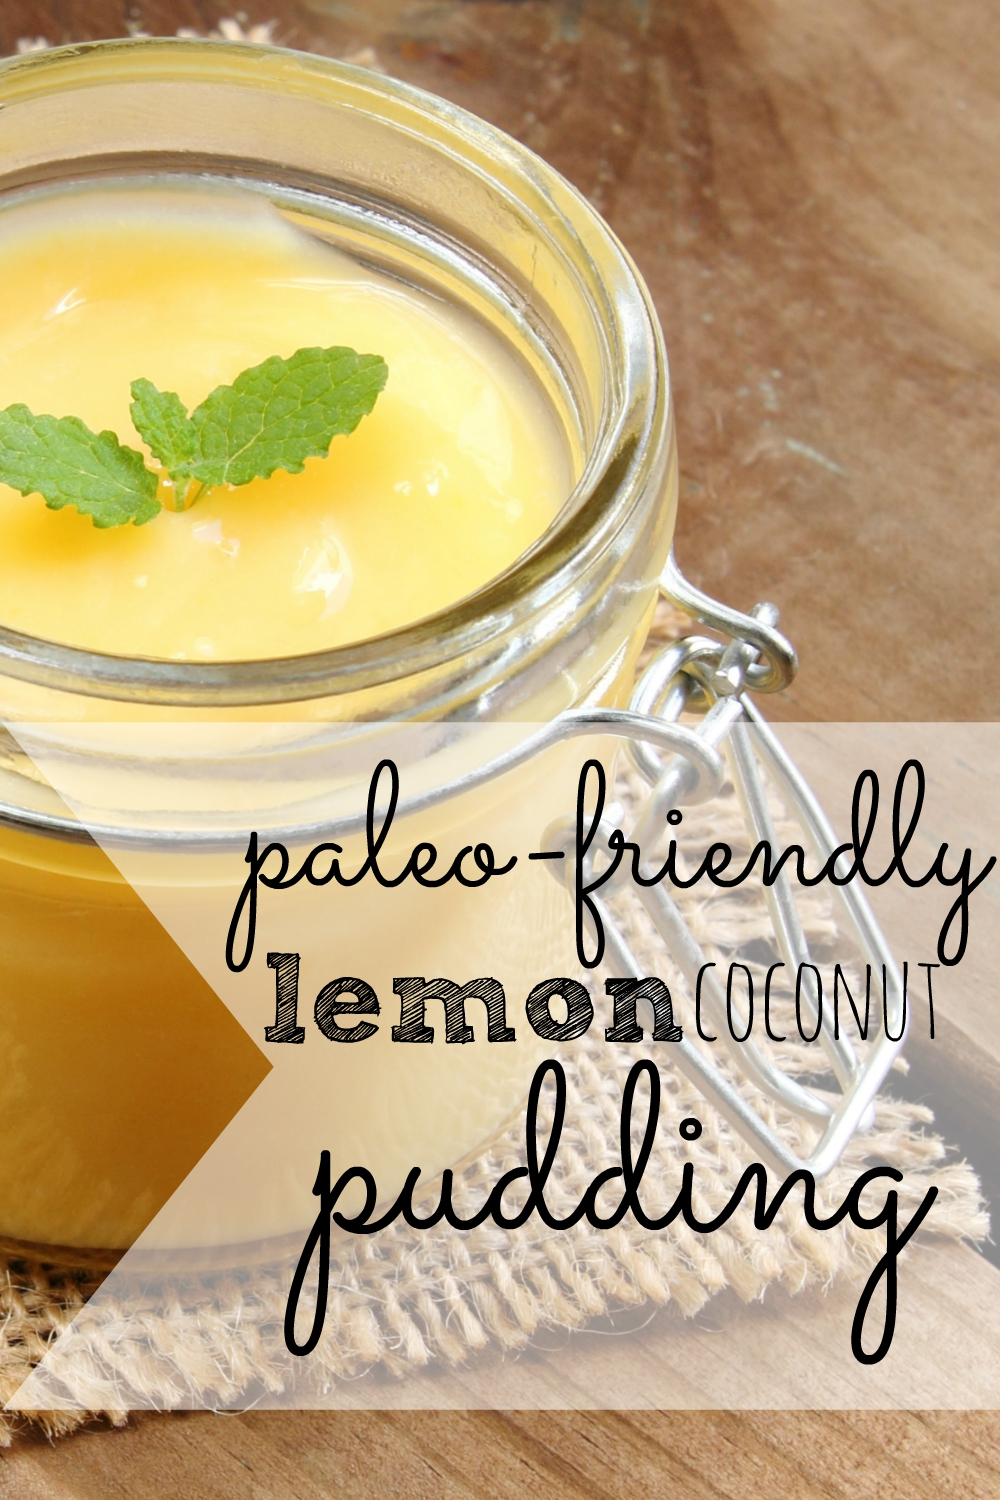 Looking for something quick and sweet? Try this super easy lemon coconut pudding recipe!